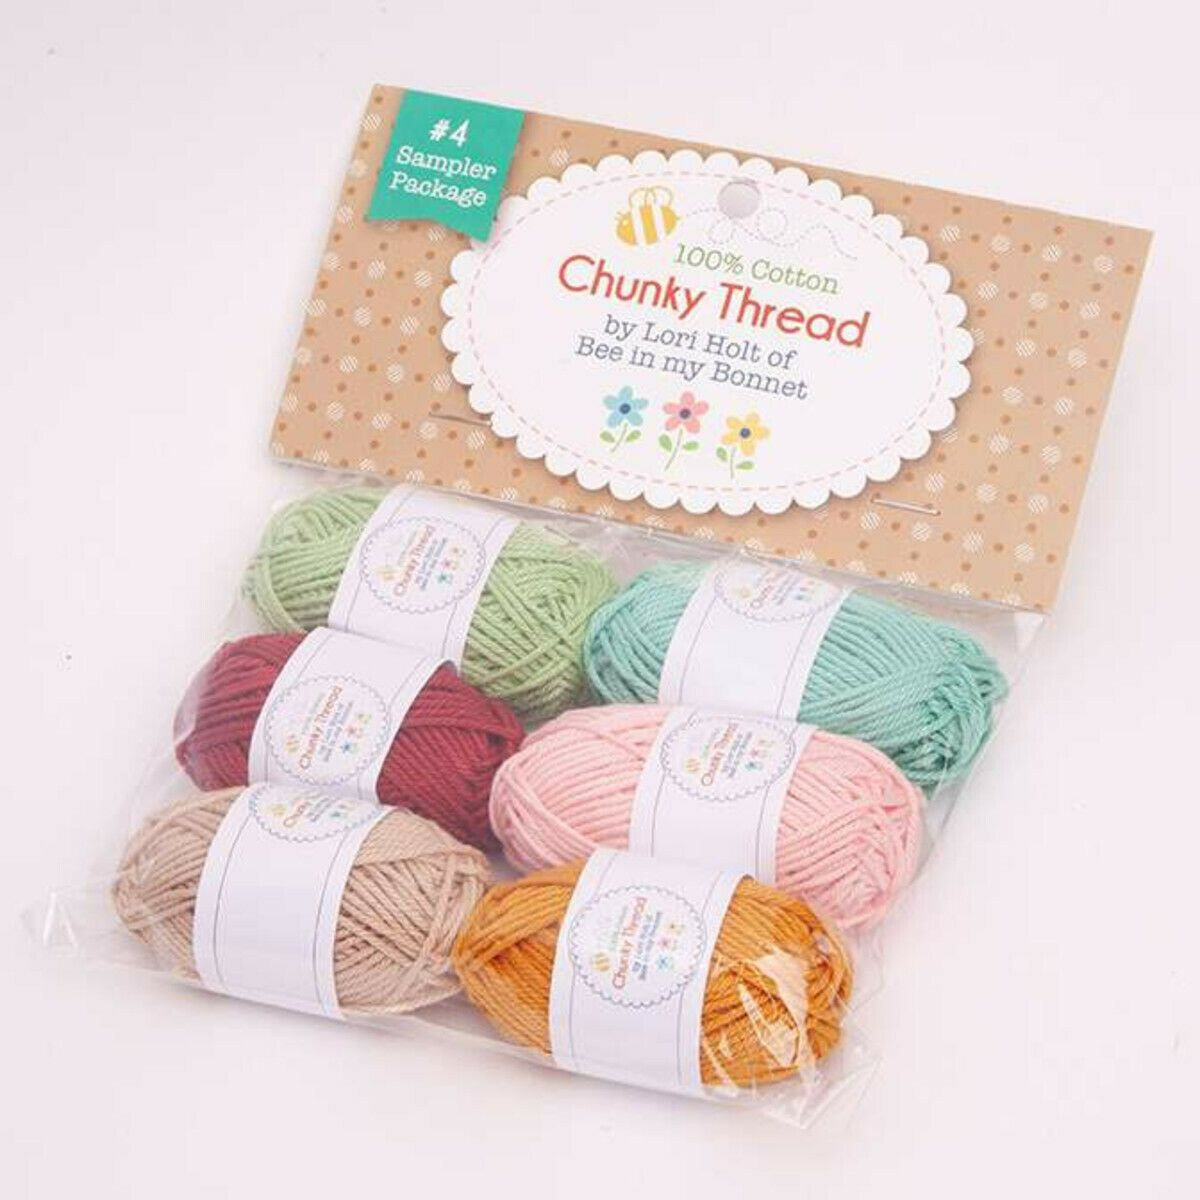 Chunky Thread Sampler Package #4 by Lori Holt (Pack of 6)